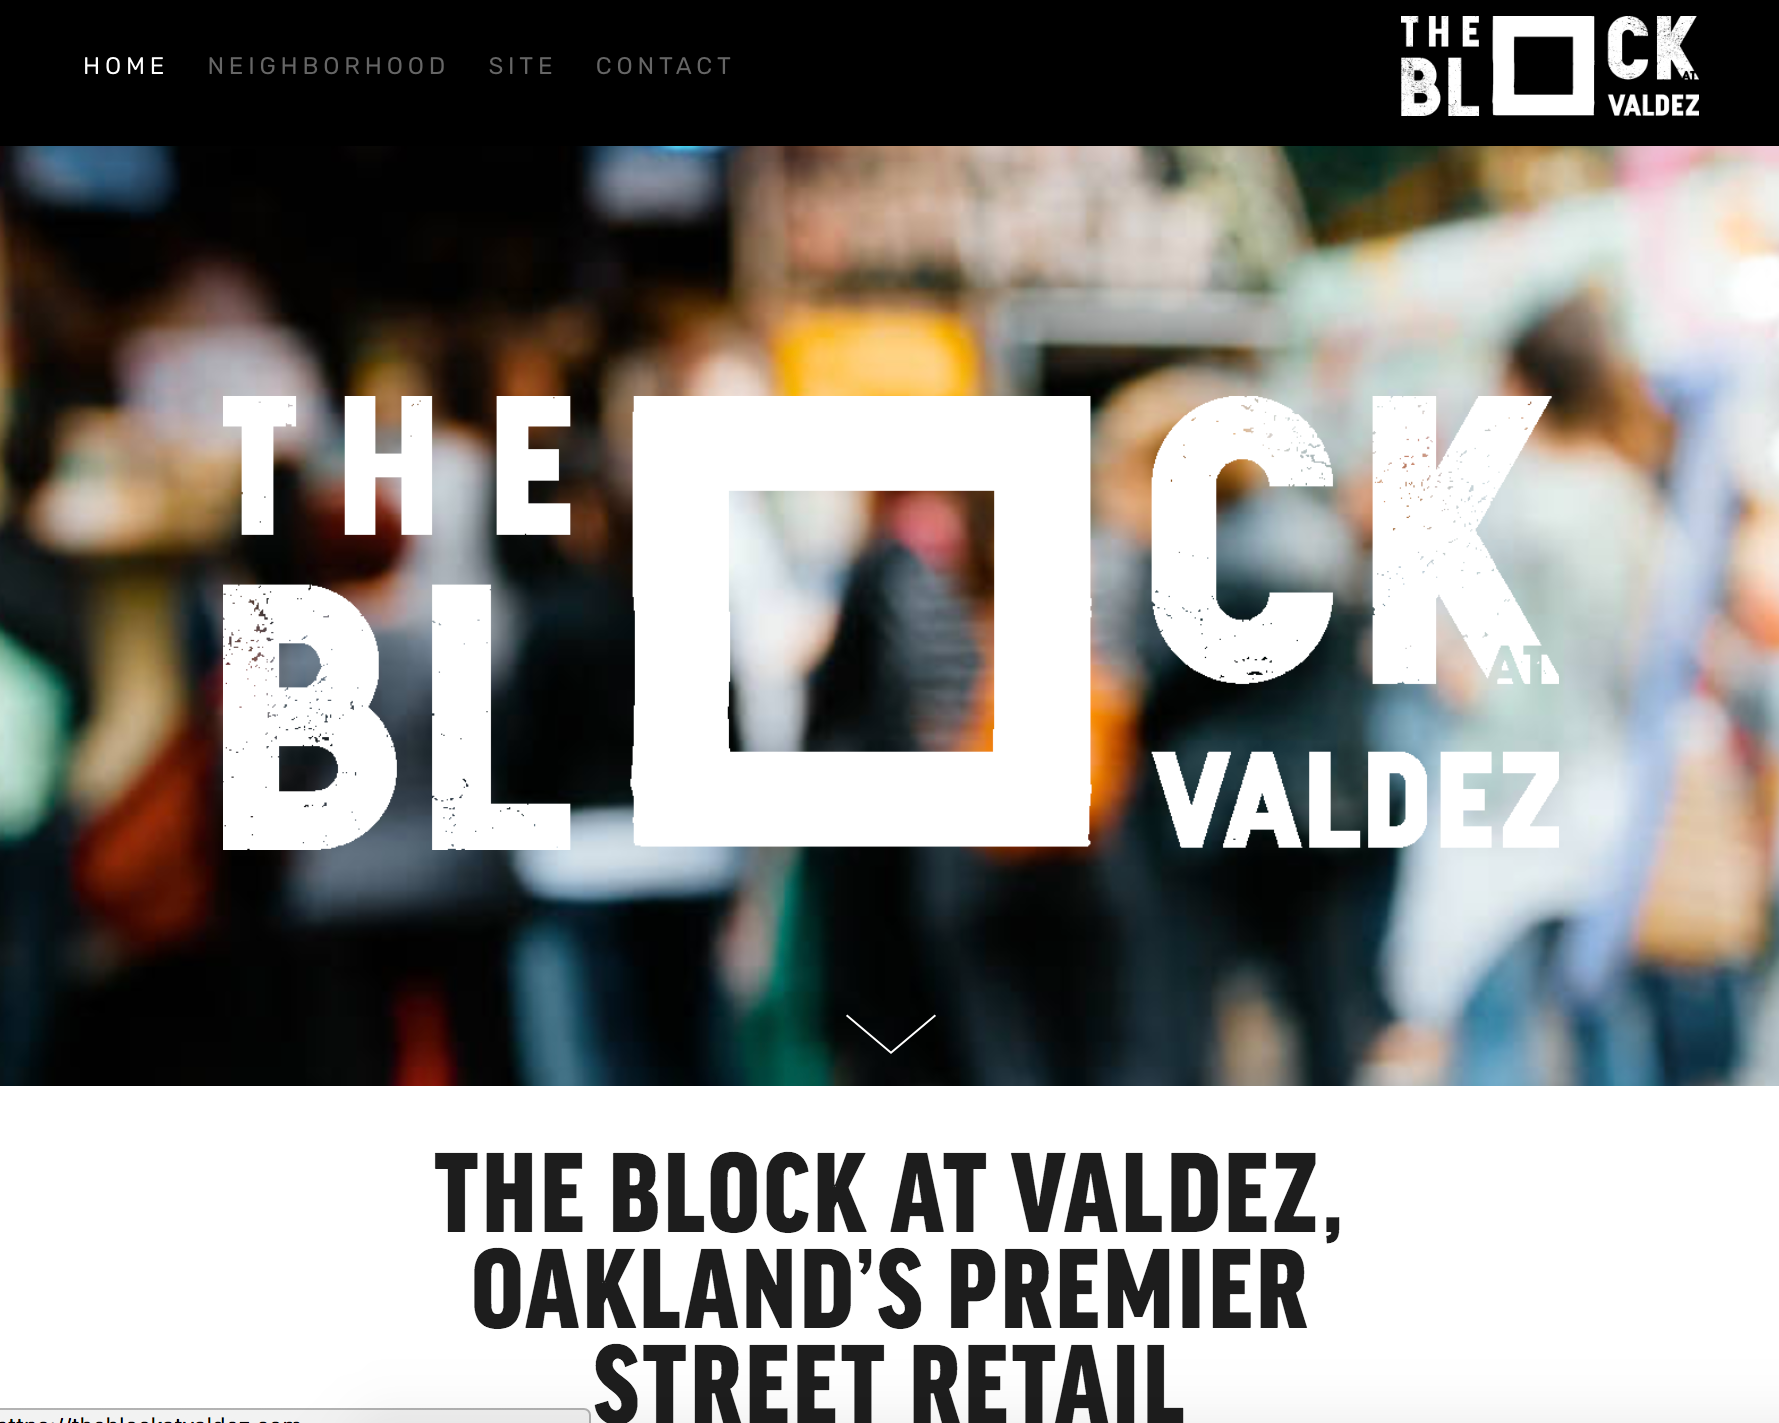 The Block at Valdez